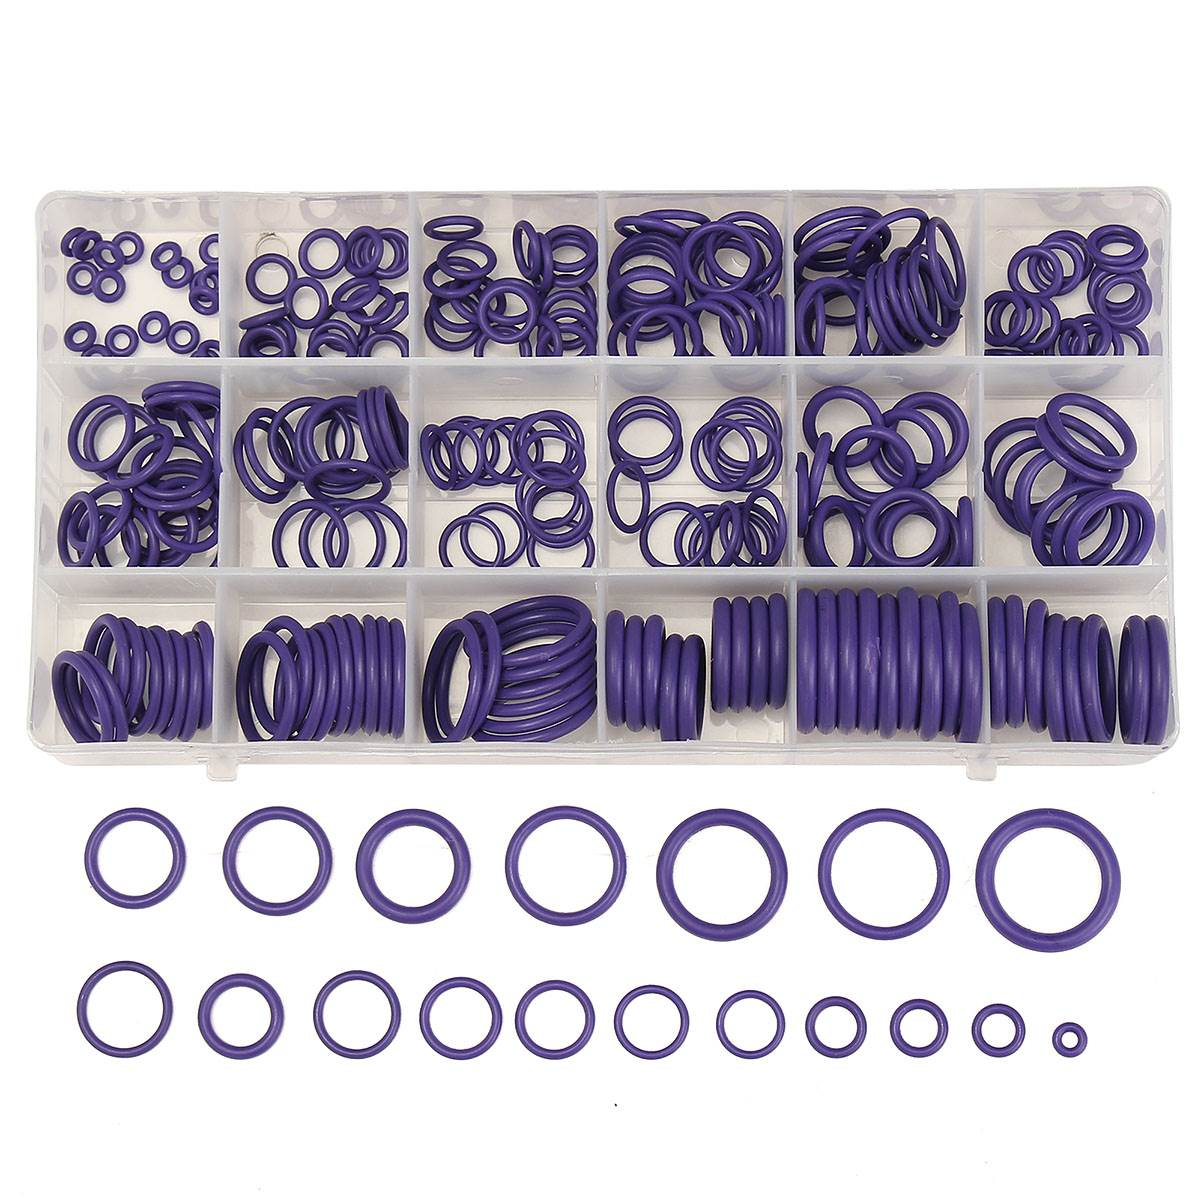 Seal O Ring Gaskets Set 225pcs Purple Rubber Washer Freeship Auto Air conditioning Parts for R22 R134a O Ring Assortment Kit цена